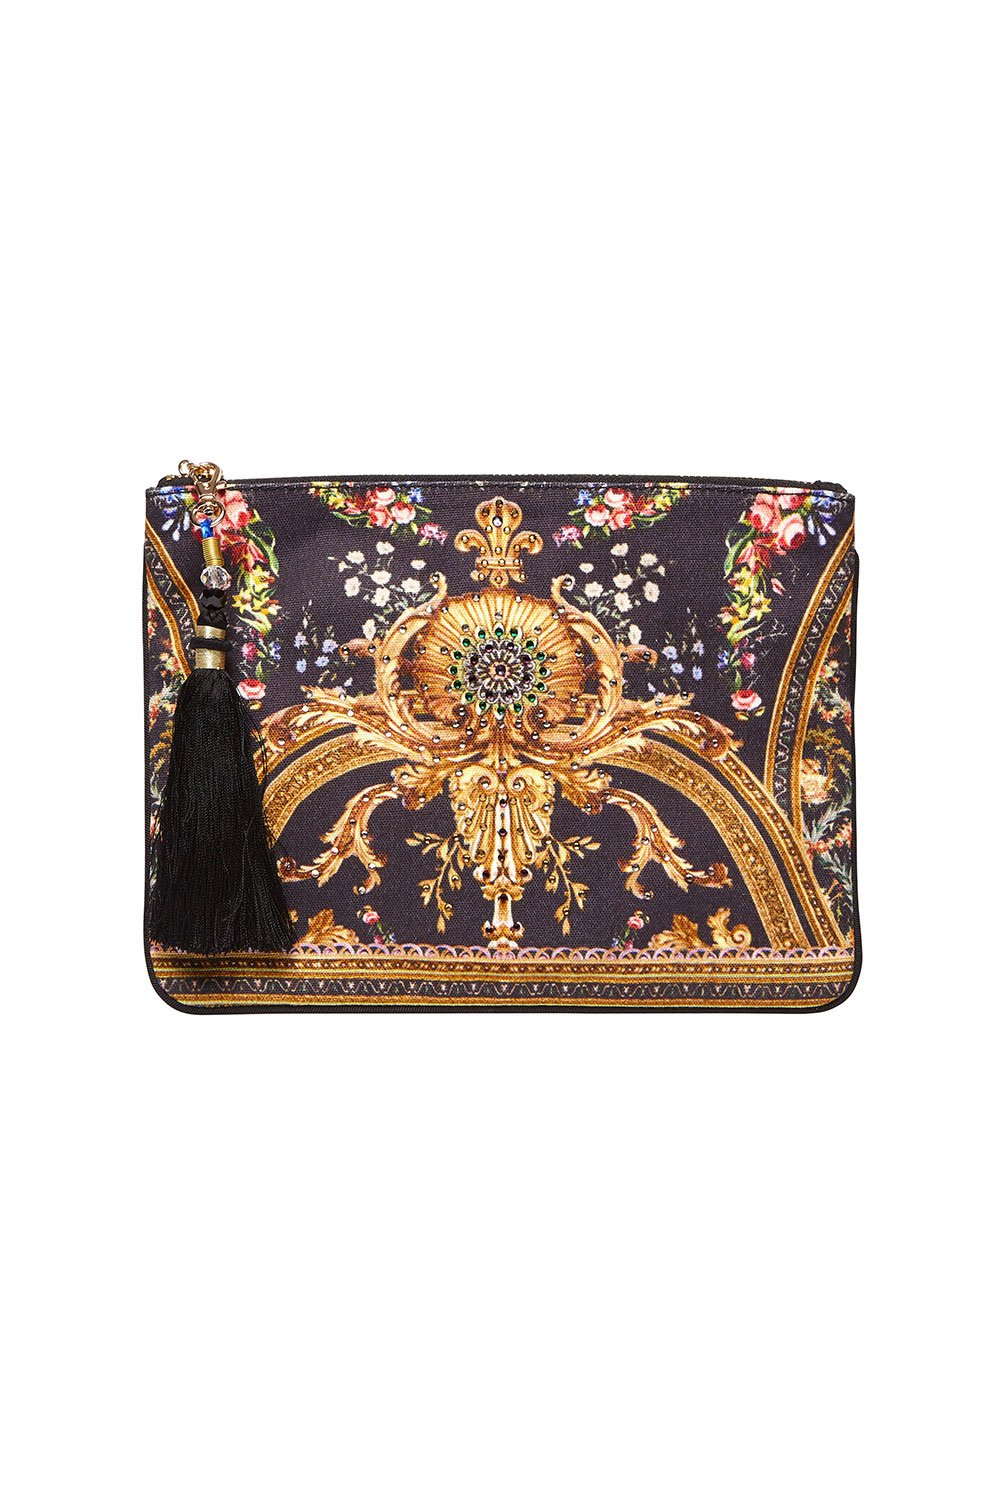 CAMILLA SMALL CANVAS CLUTCH FRIEND IN FLORA